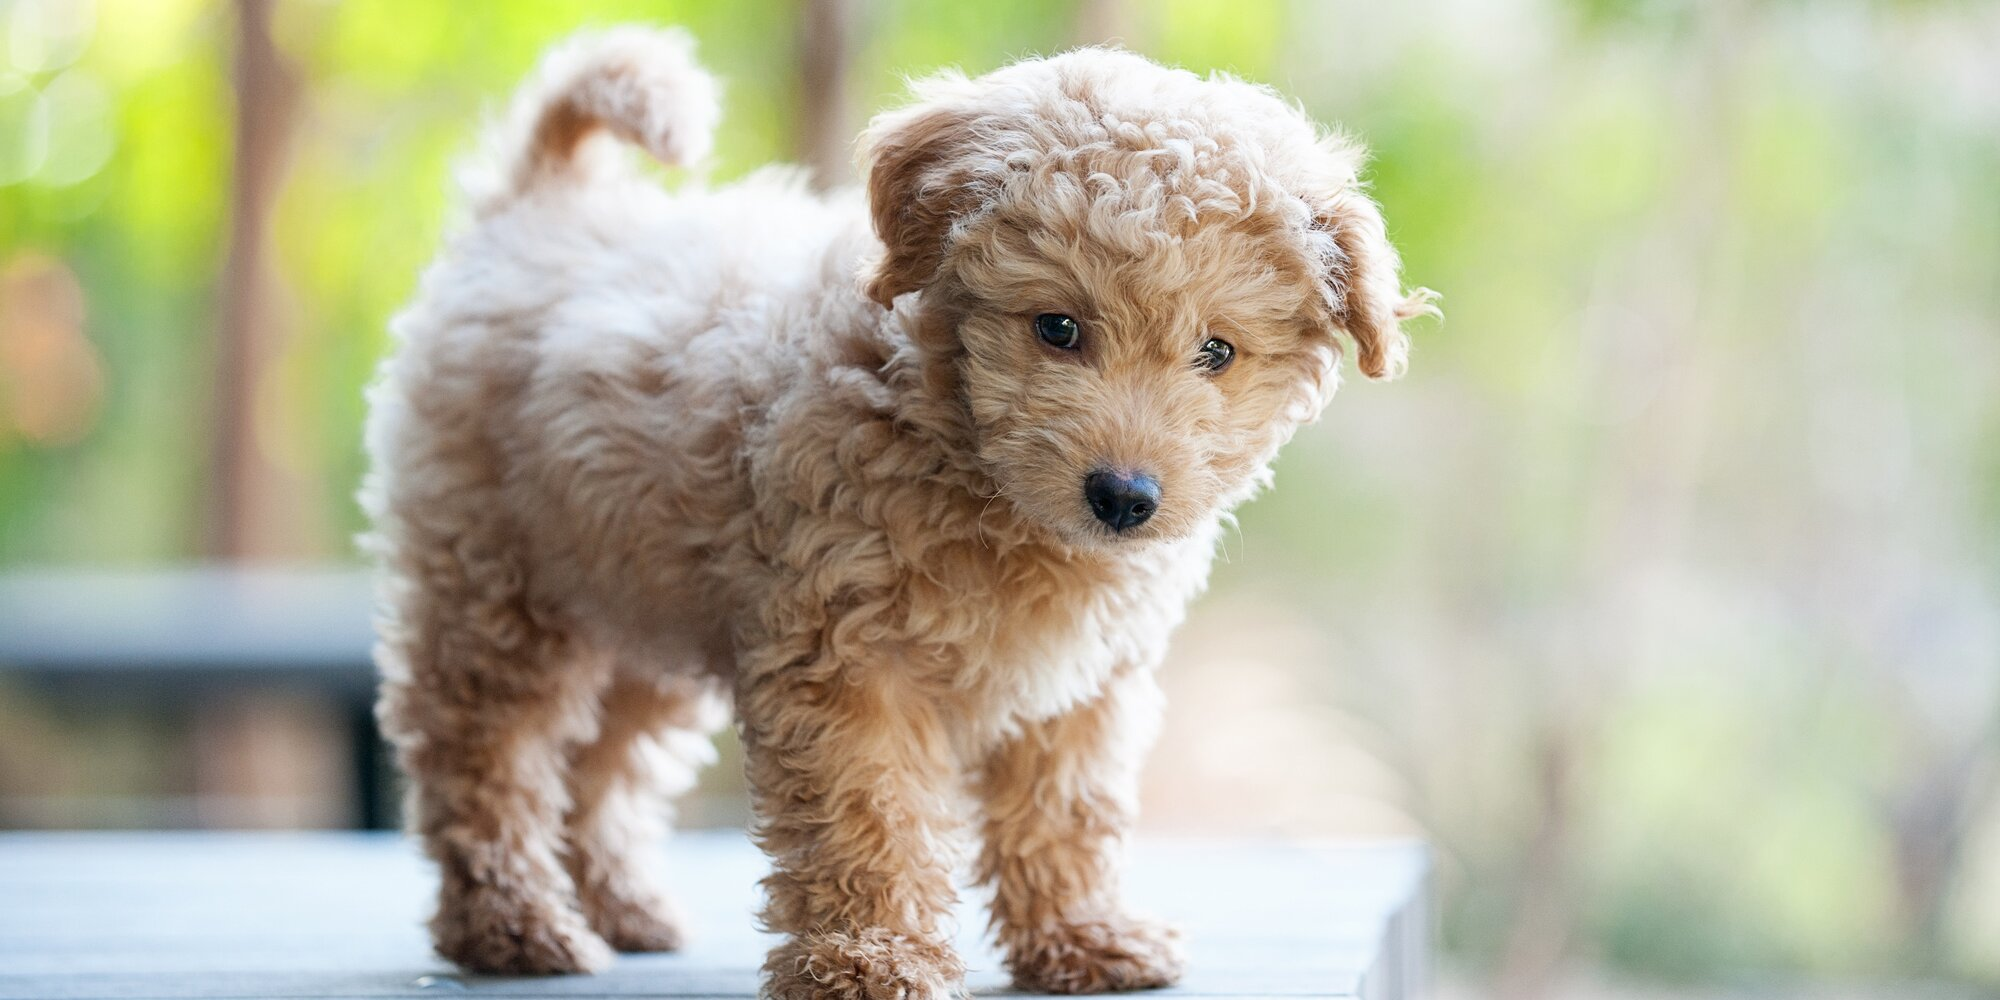 Top Questions For Dog Adoption & Handling For Families With Children